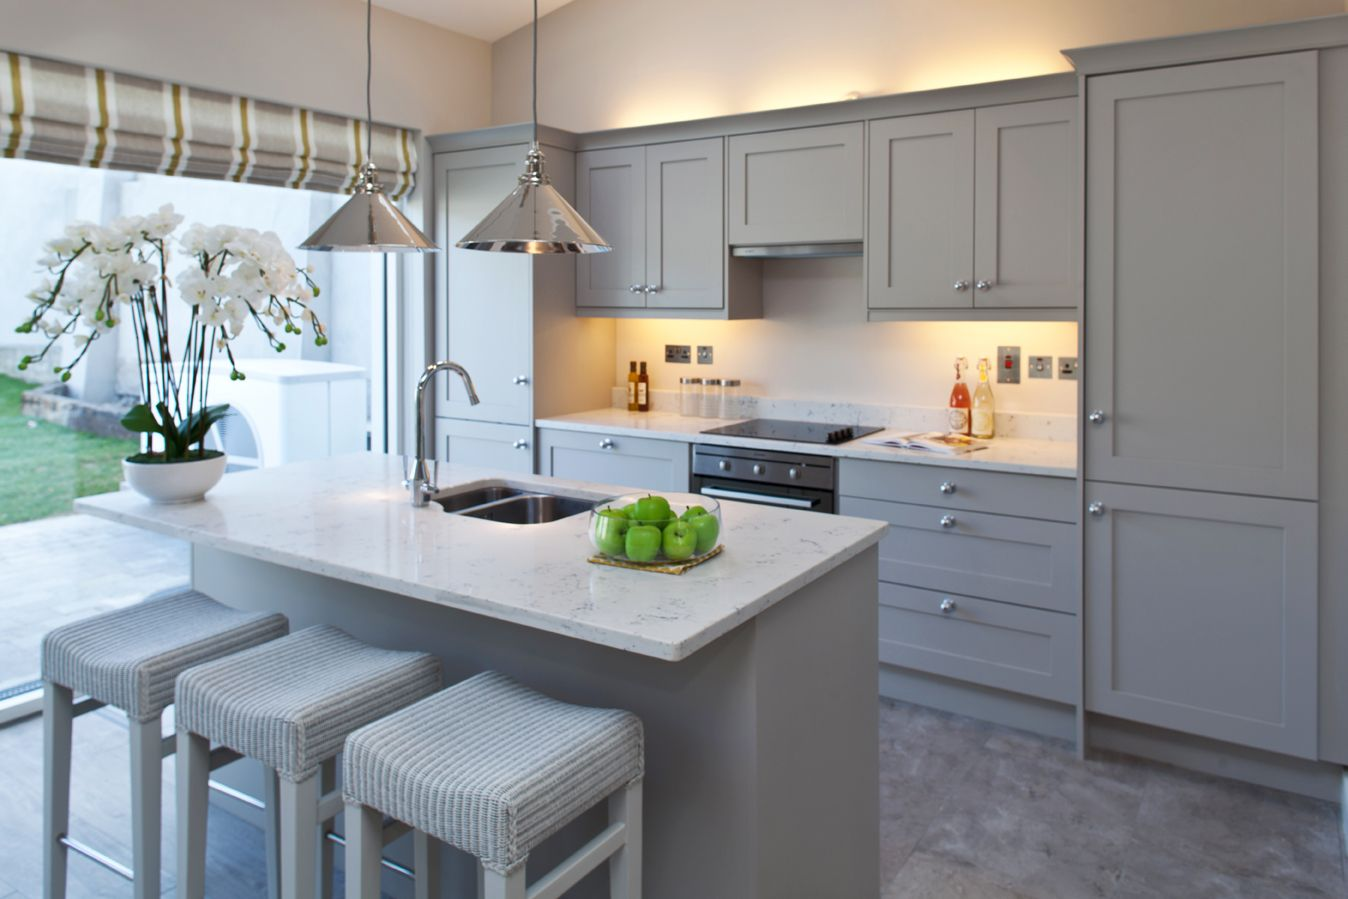 White Cabinets And Grey Countertops Kitchen Grey Cabinets With White Quartz Worktop